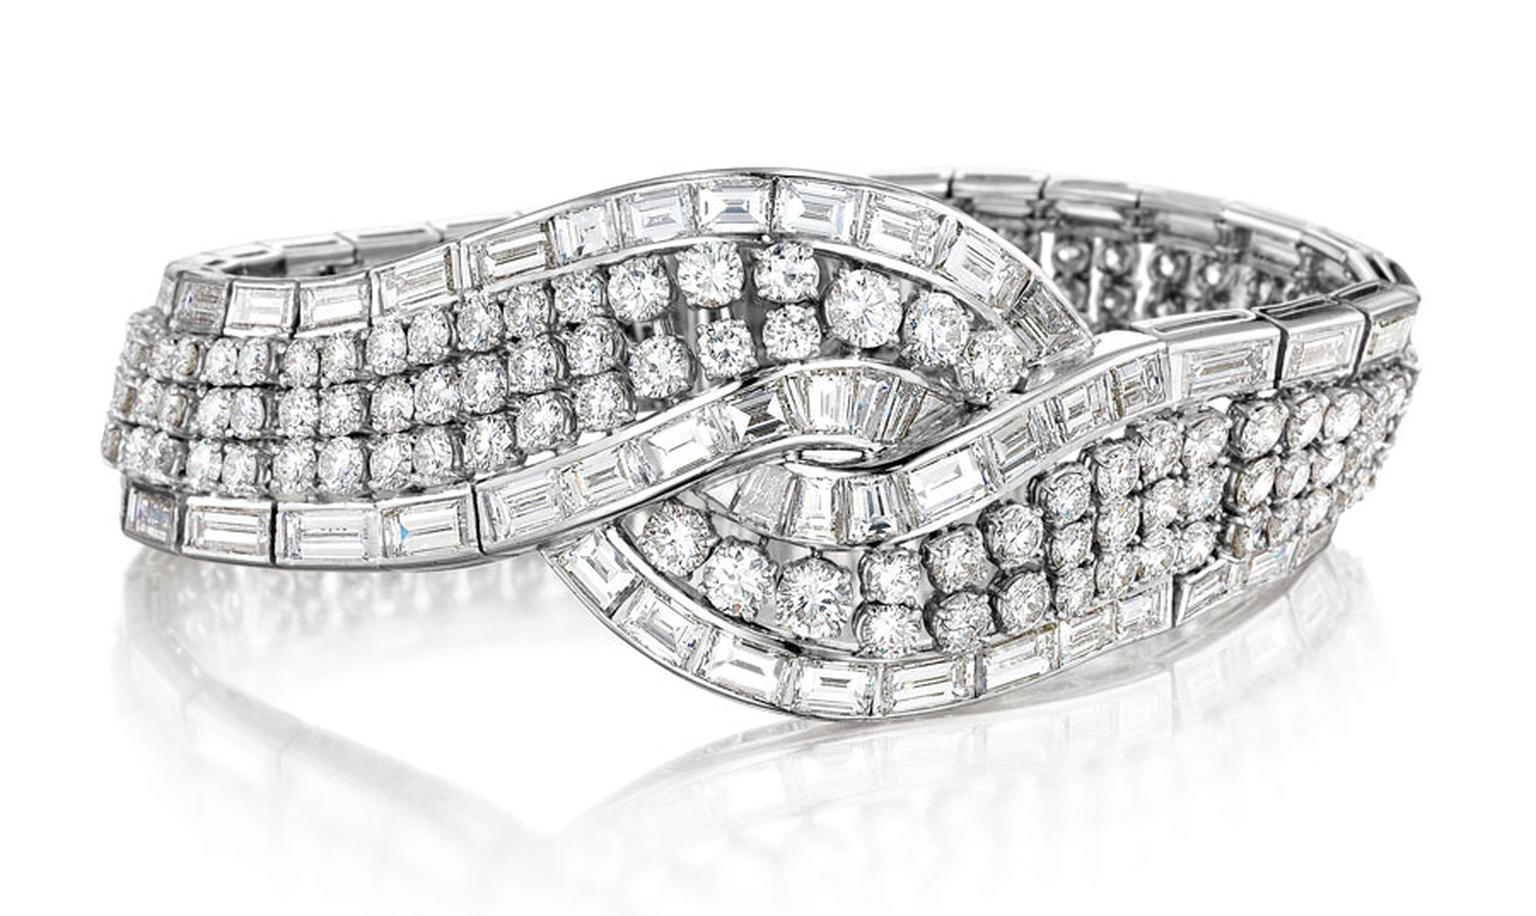 MPL-2013-Verdura-Diamond-and-Platinum-Bracelet-1958